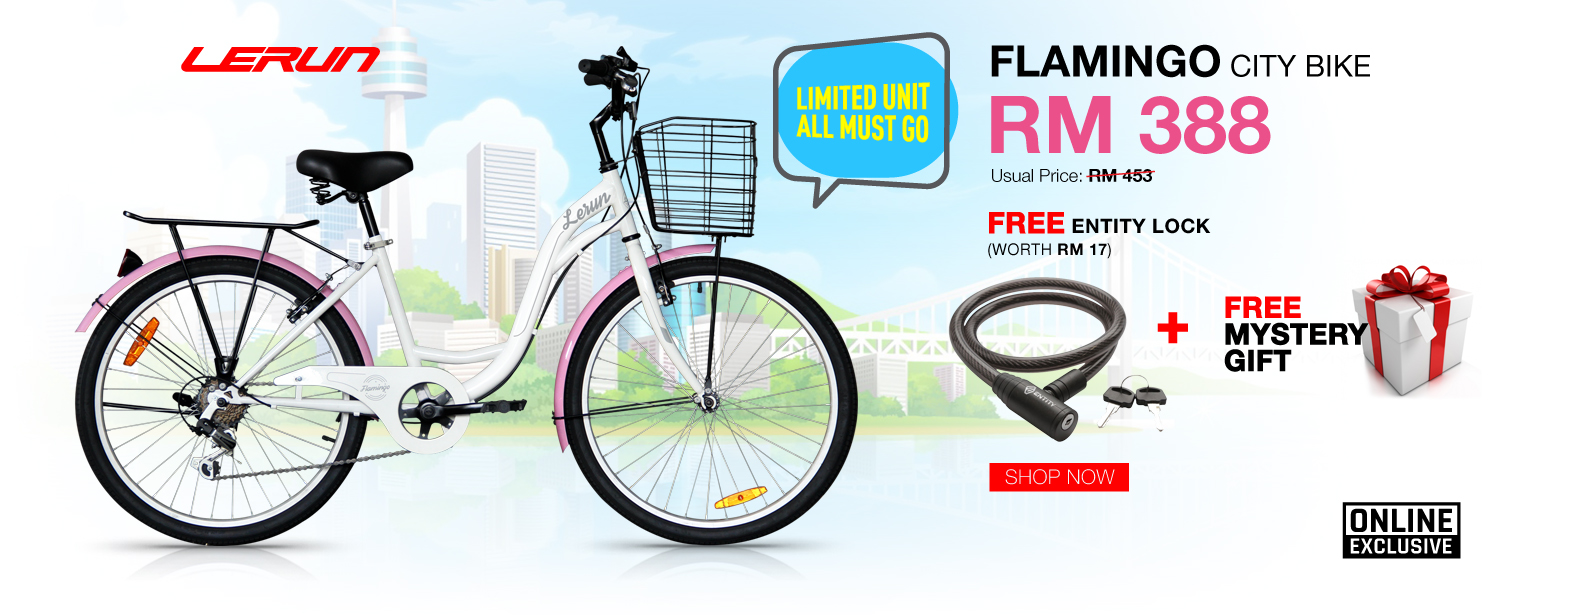 Lerun Flamingo promotion